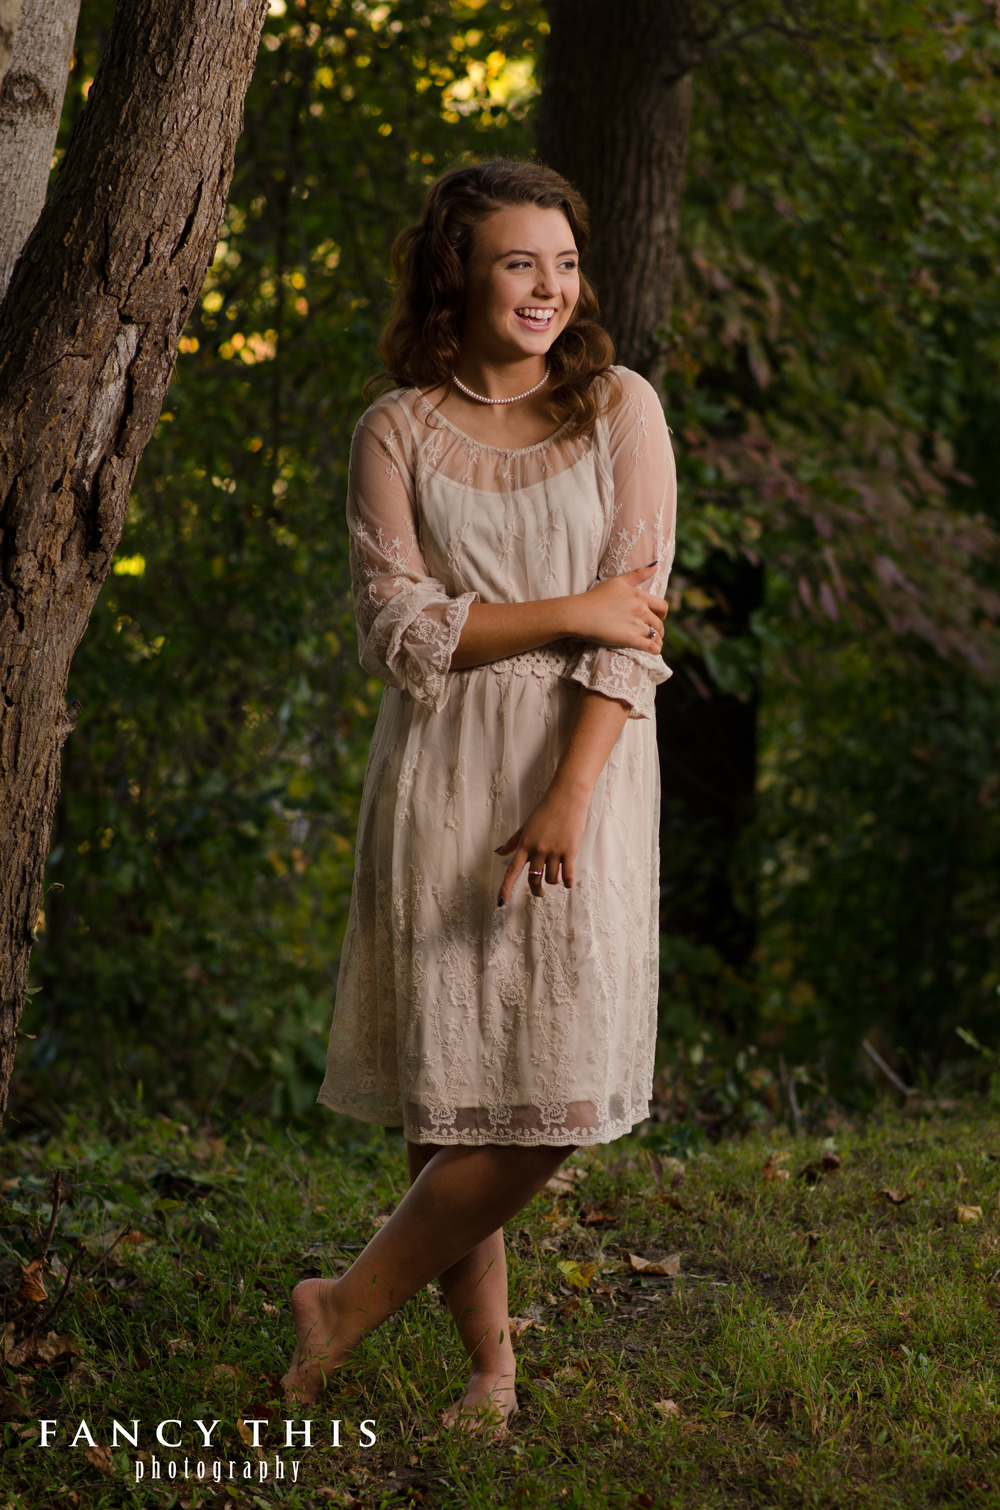 ceecee_huffman_senior (1 of 12).jpg